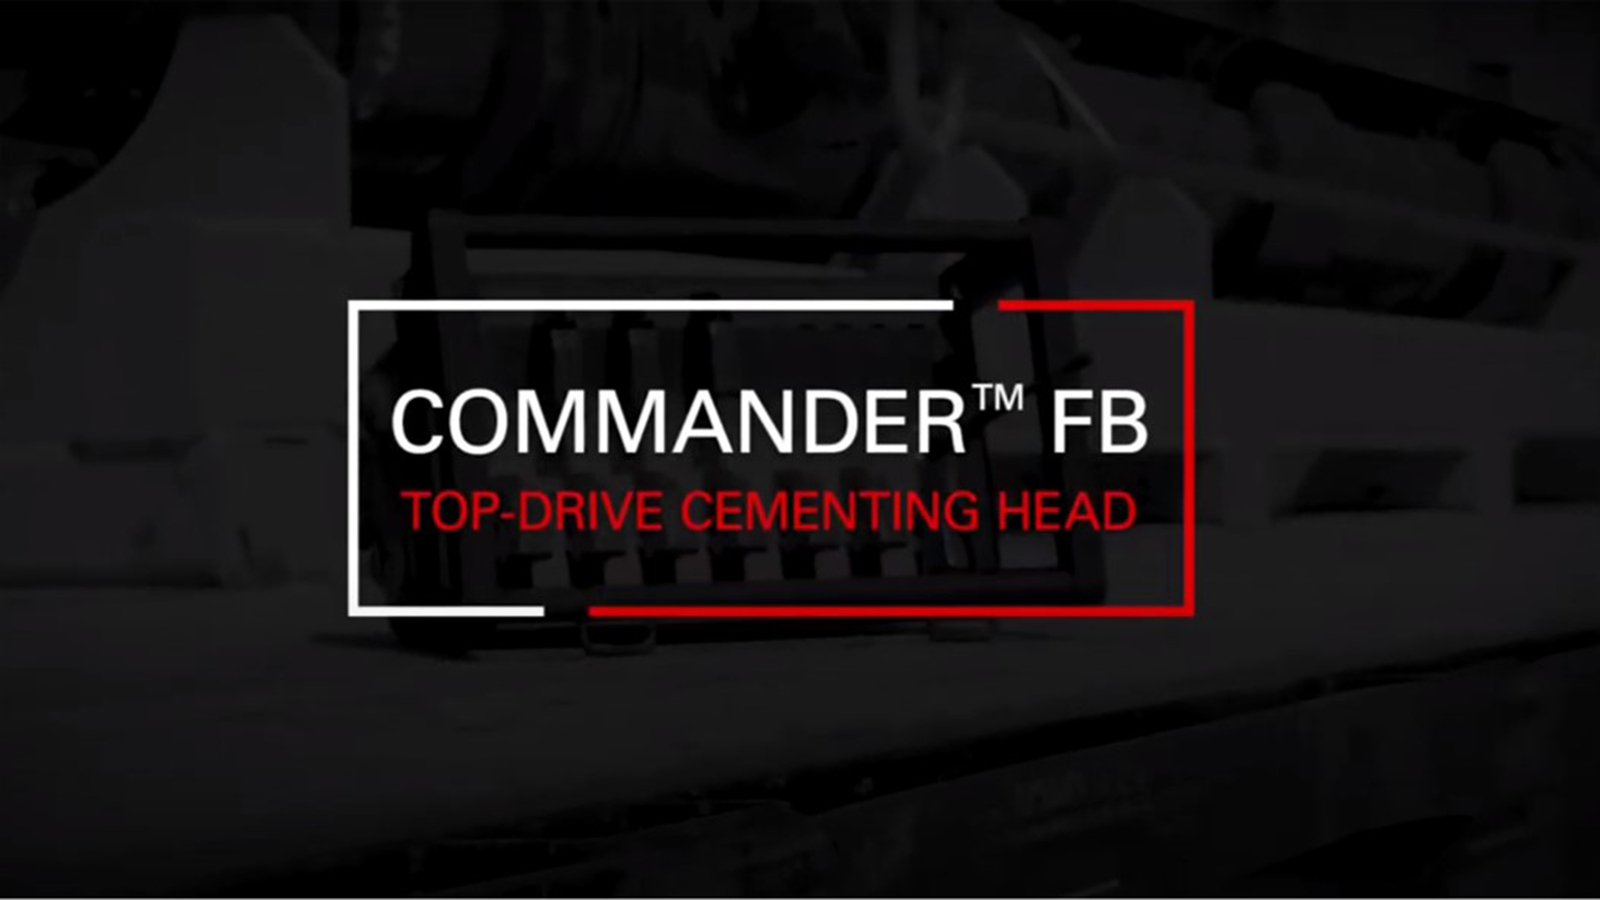 Commander™ Full Bore top-drive cementing head